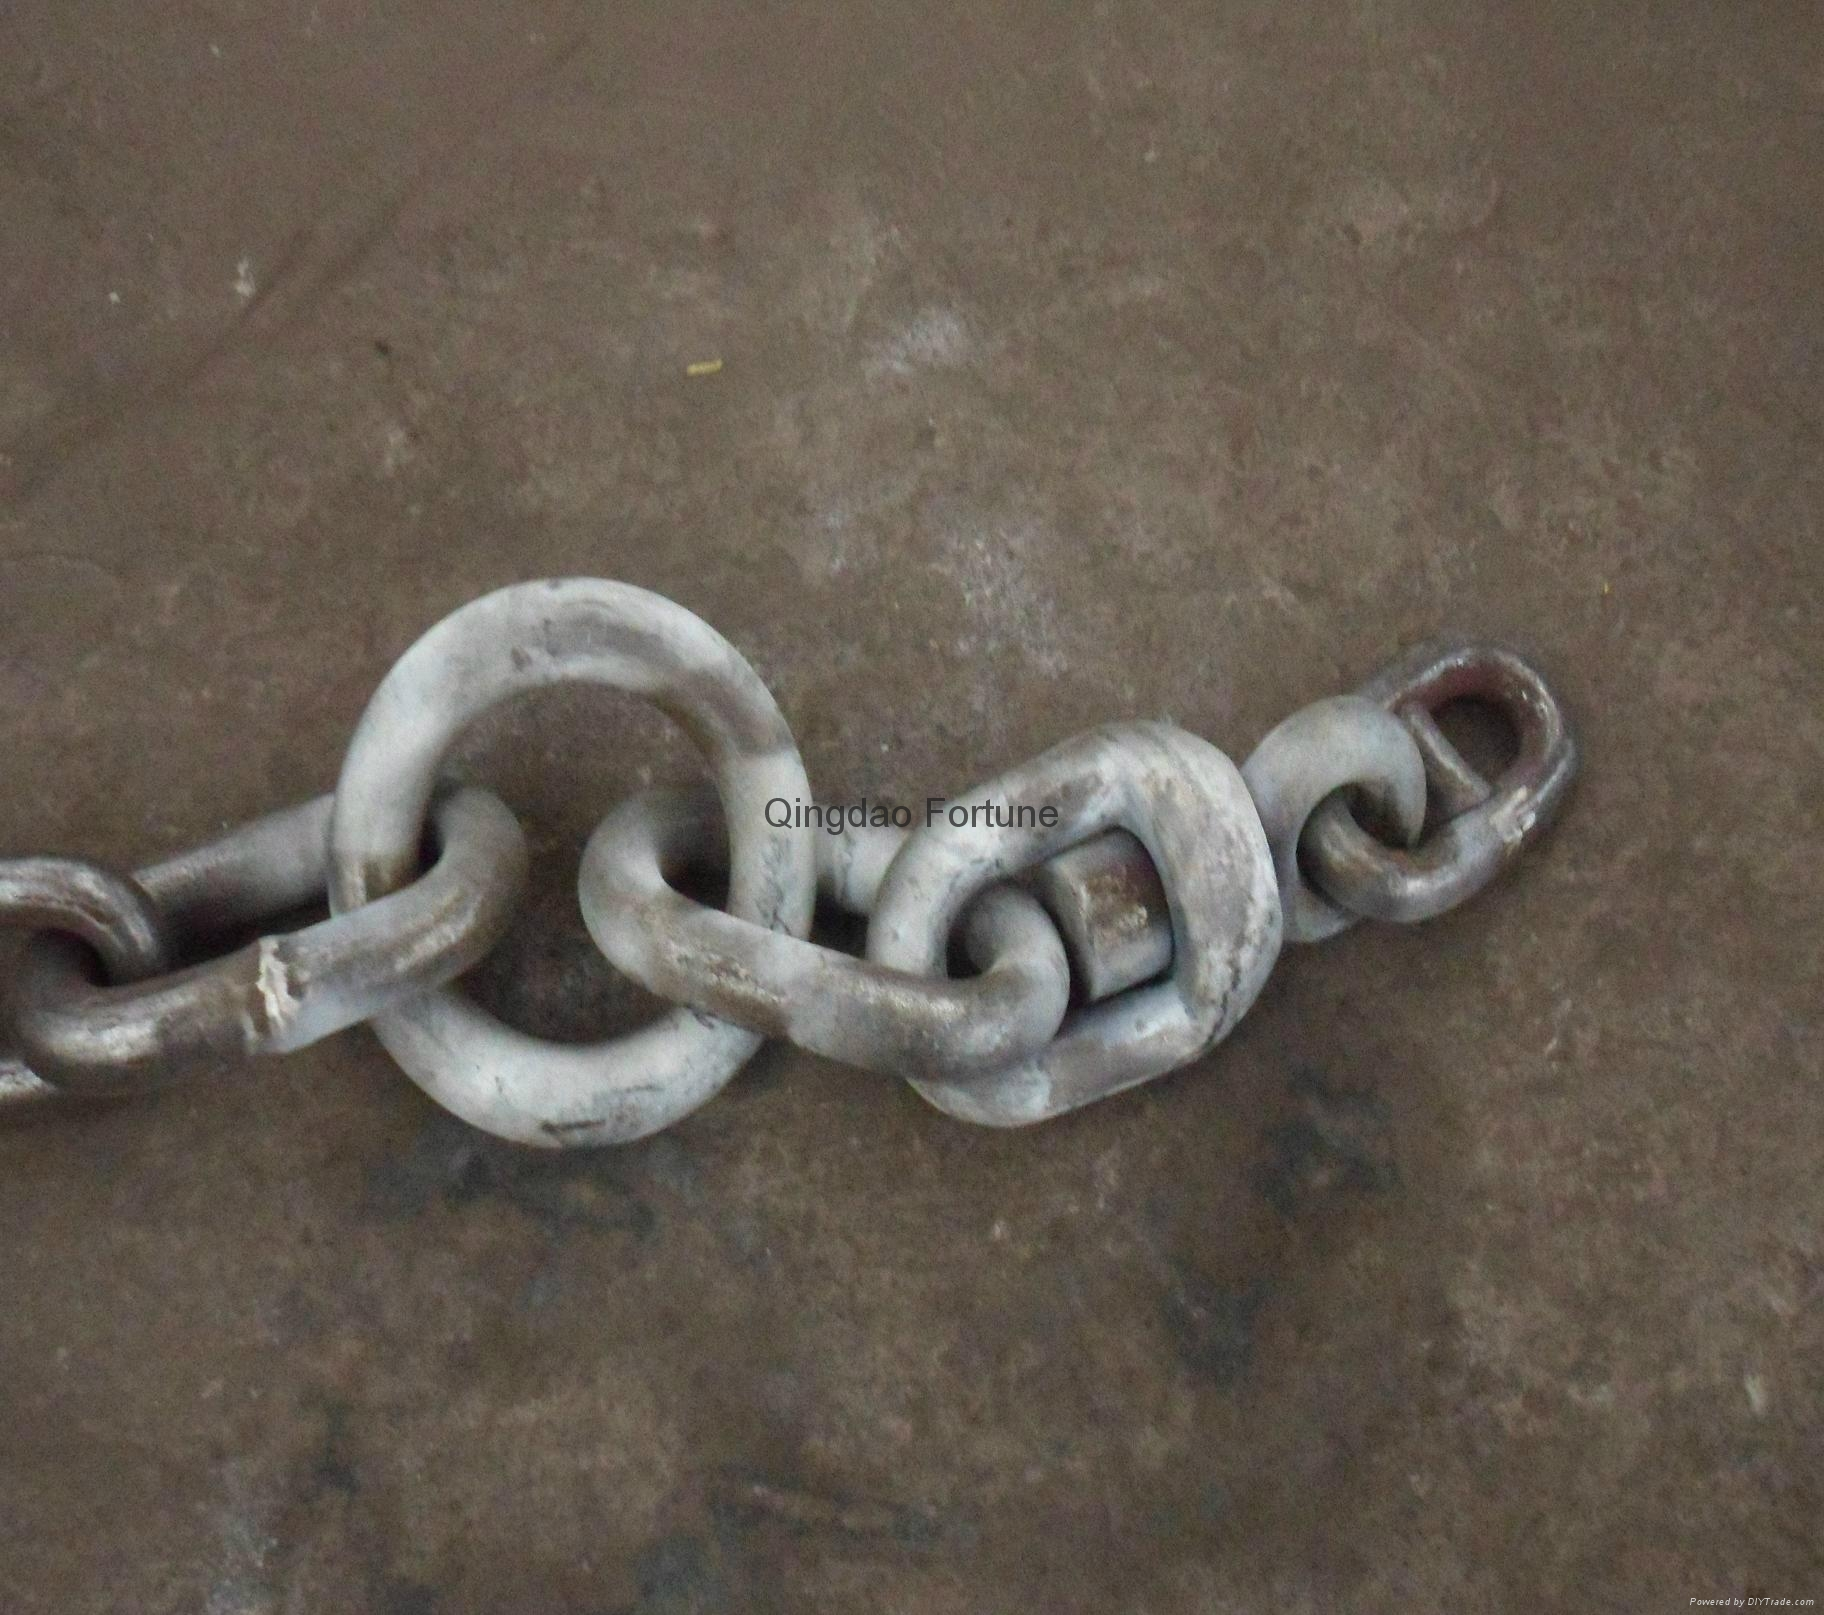 Shackle and chain assembly 2